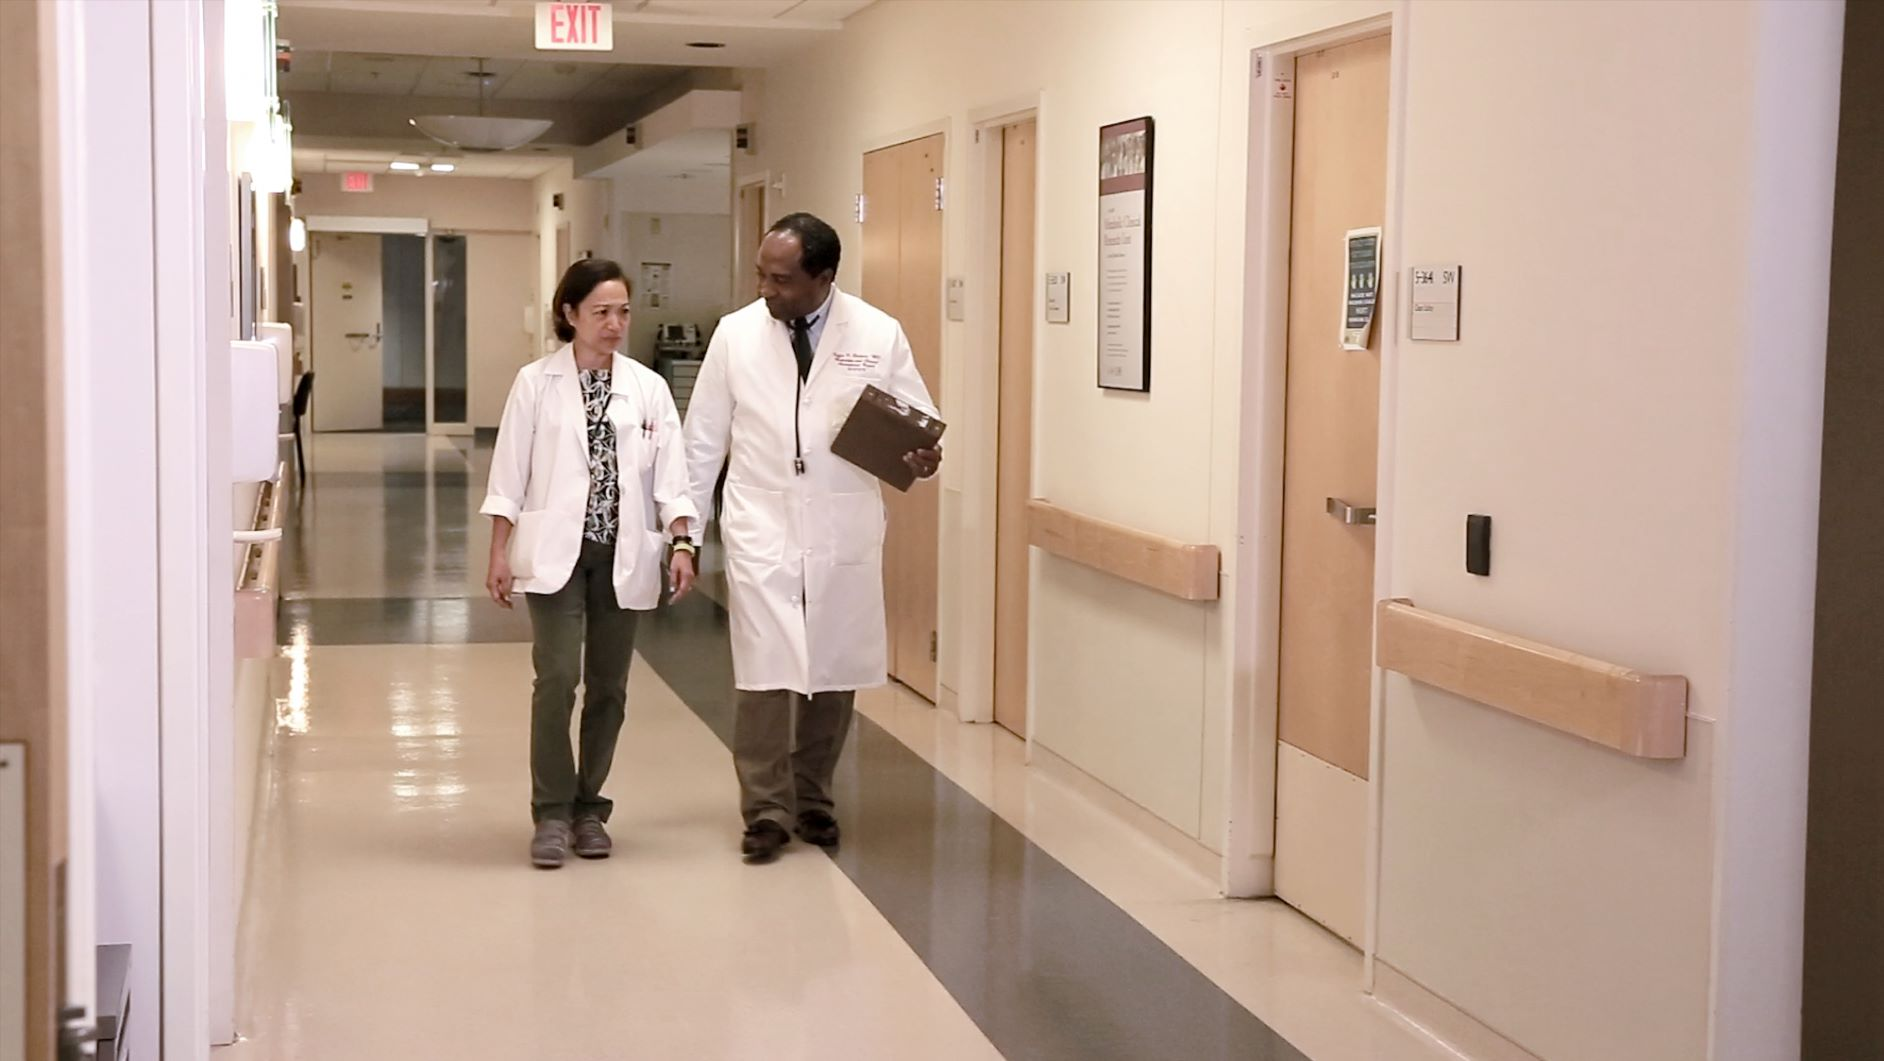 Dr. Rodgers walking through a hallway talking with another doctor.